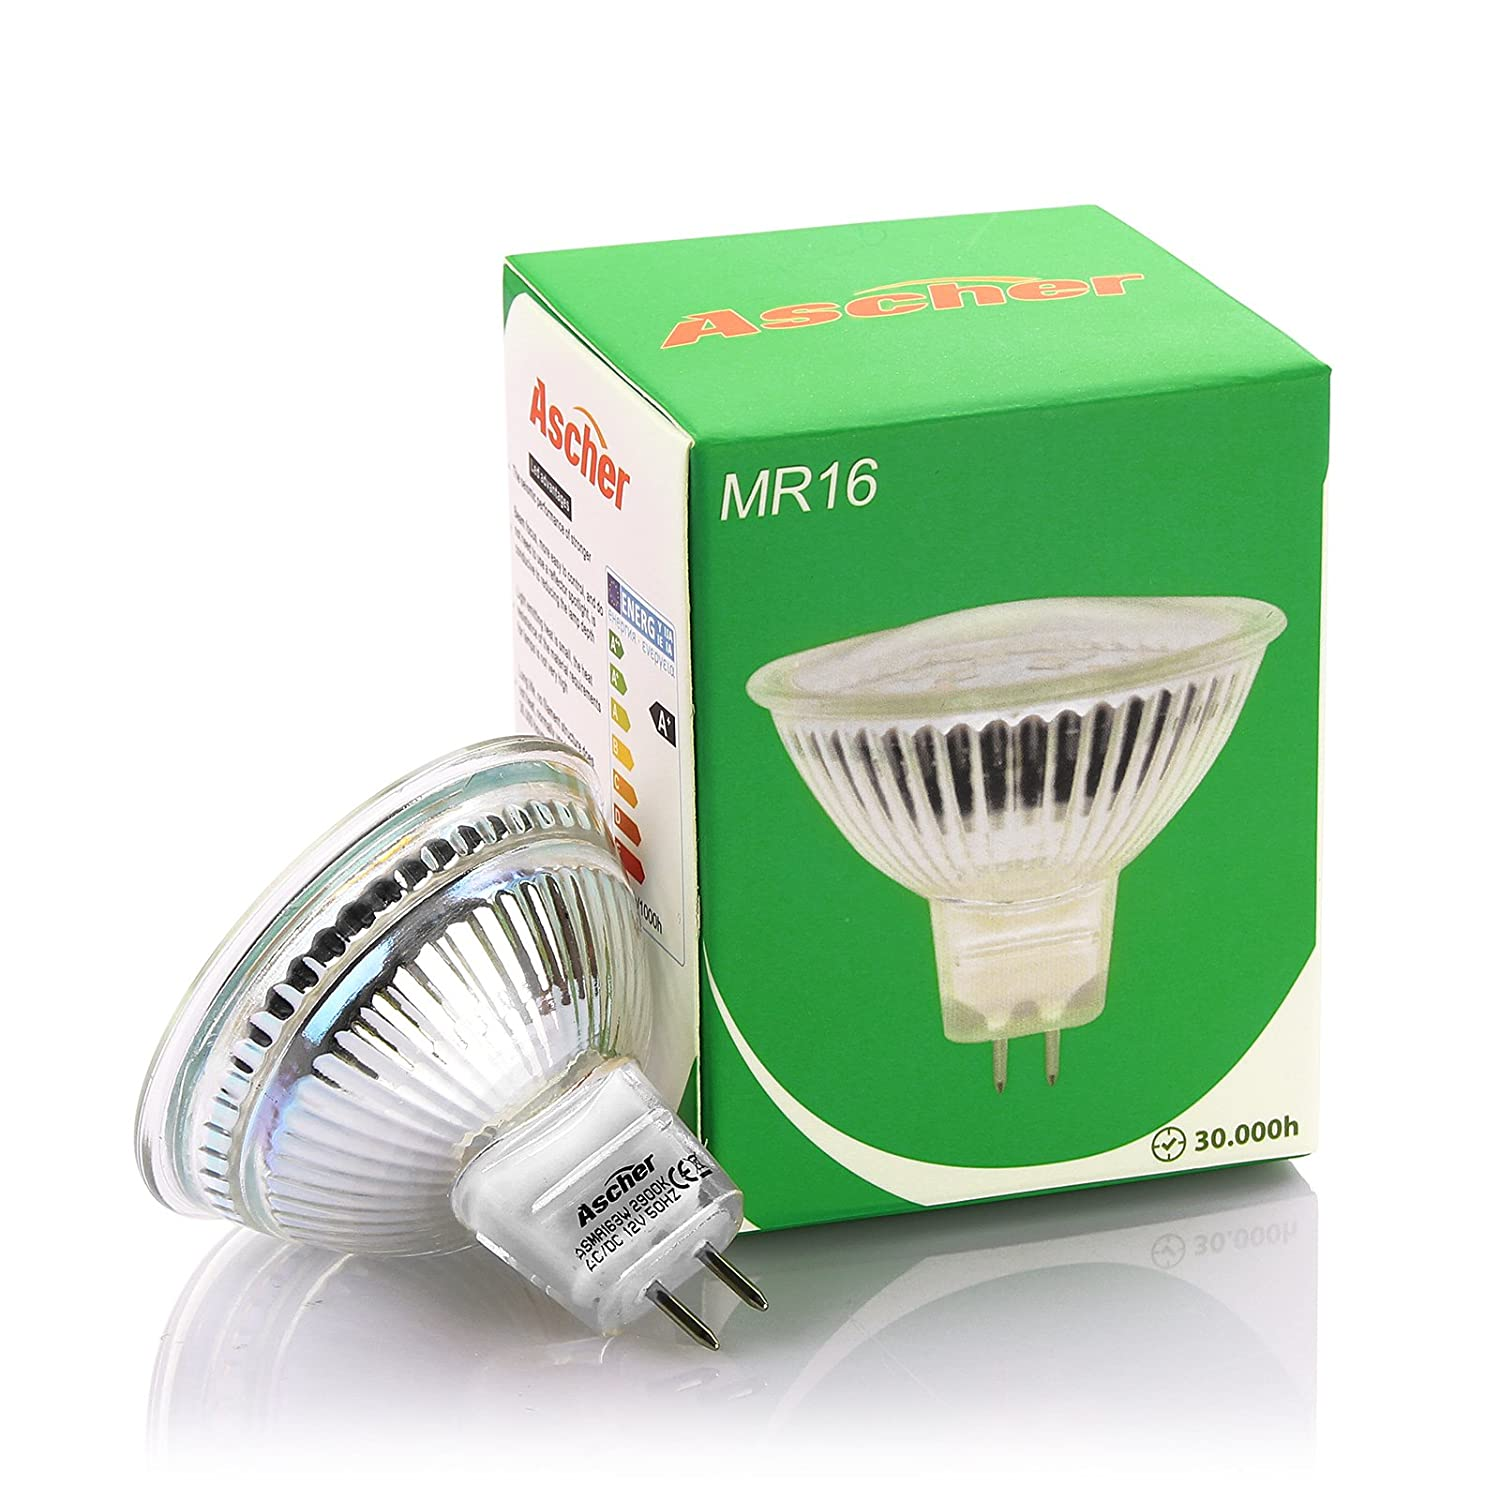 Ascher 10er pack mr16 gu53 3w led lampe vgl 30w halogen ascher 10er pack mr16 gu53 3w led lampe vgl 30w halogen 270lm warmwei 12v ac dc 120 abstrahwinkelled reflektorlampe mit gu53 sockel parisarafo Image collections